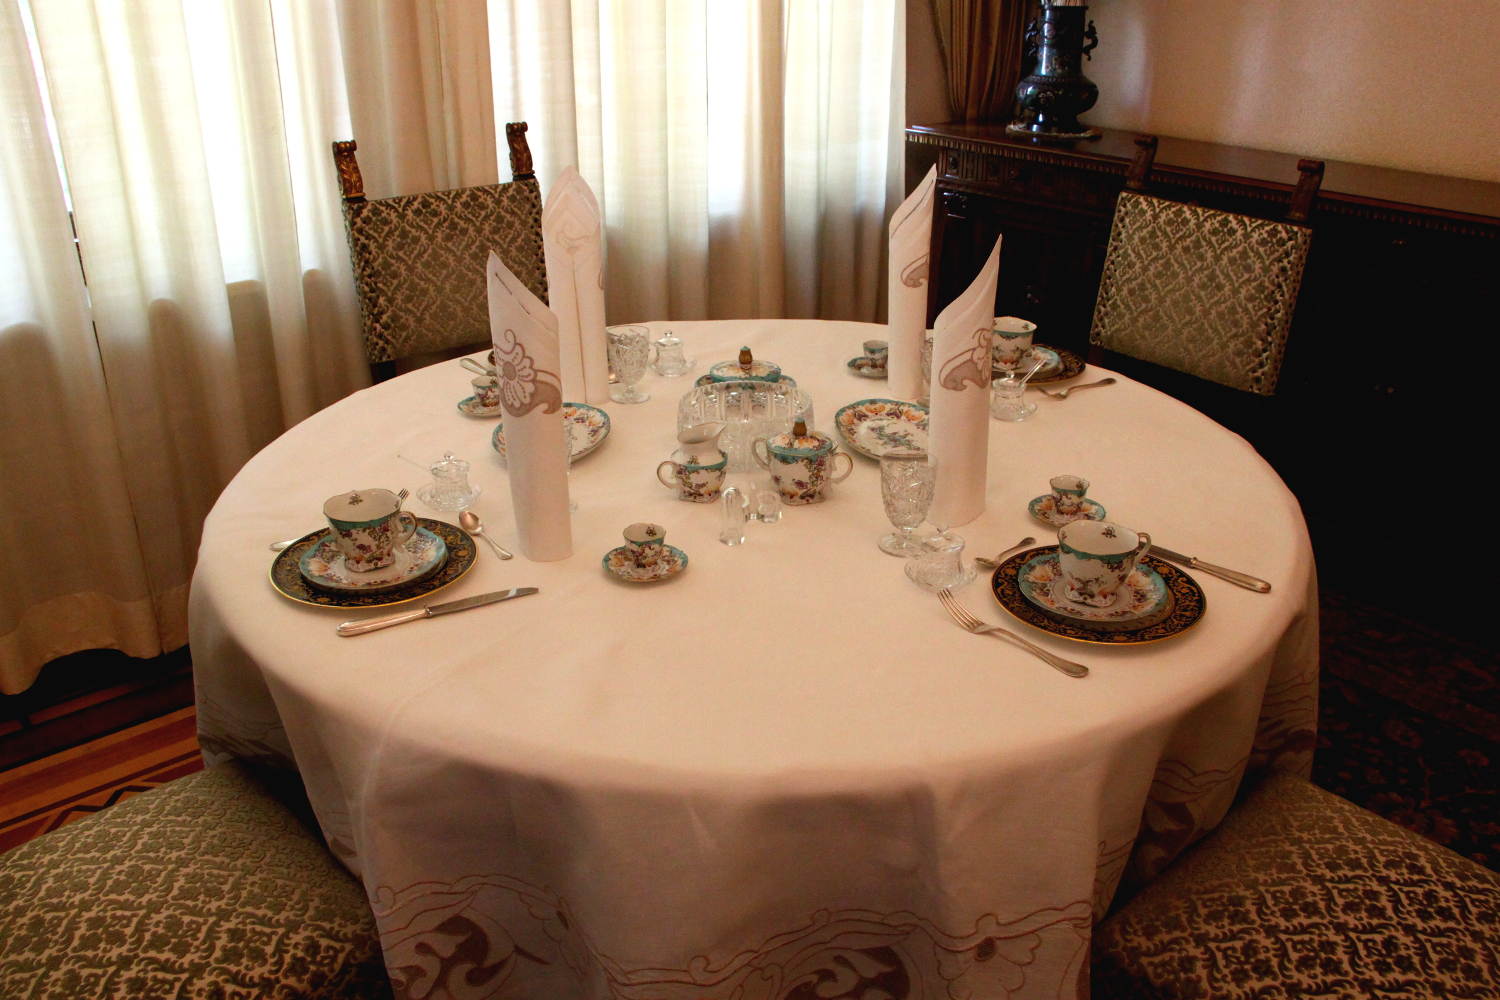 Primaverii (Spring) Palace, Ceausescu's private residence - the small table they actually used to eat